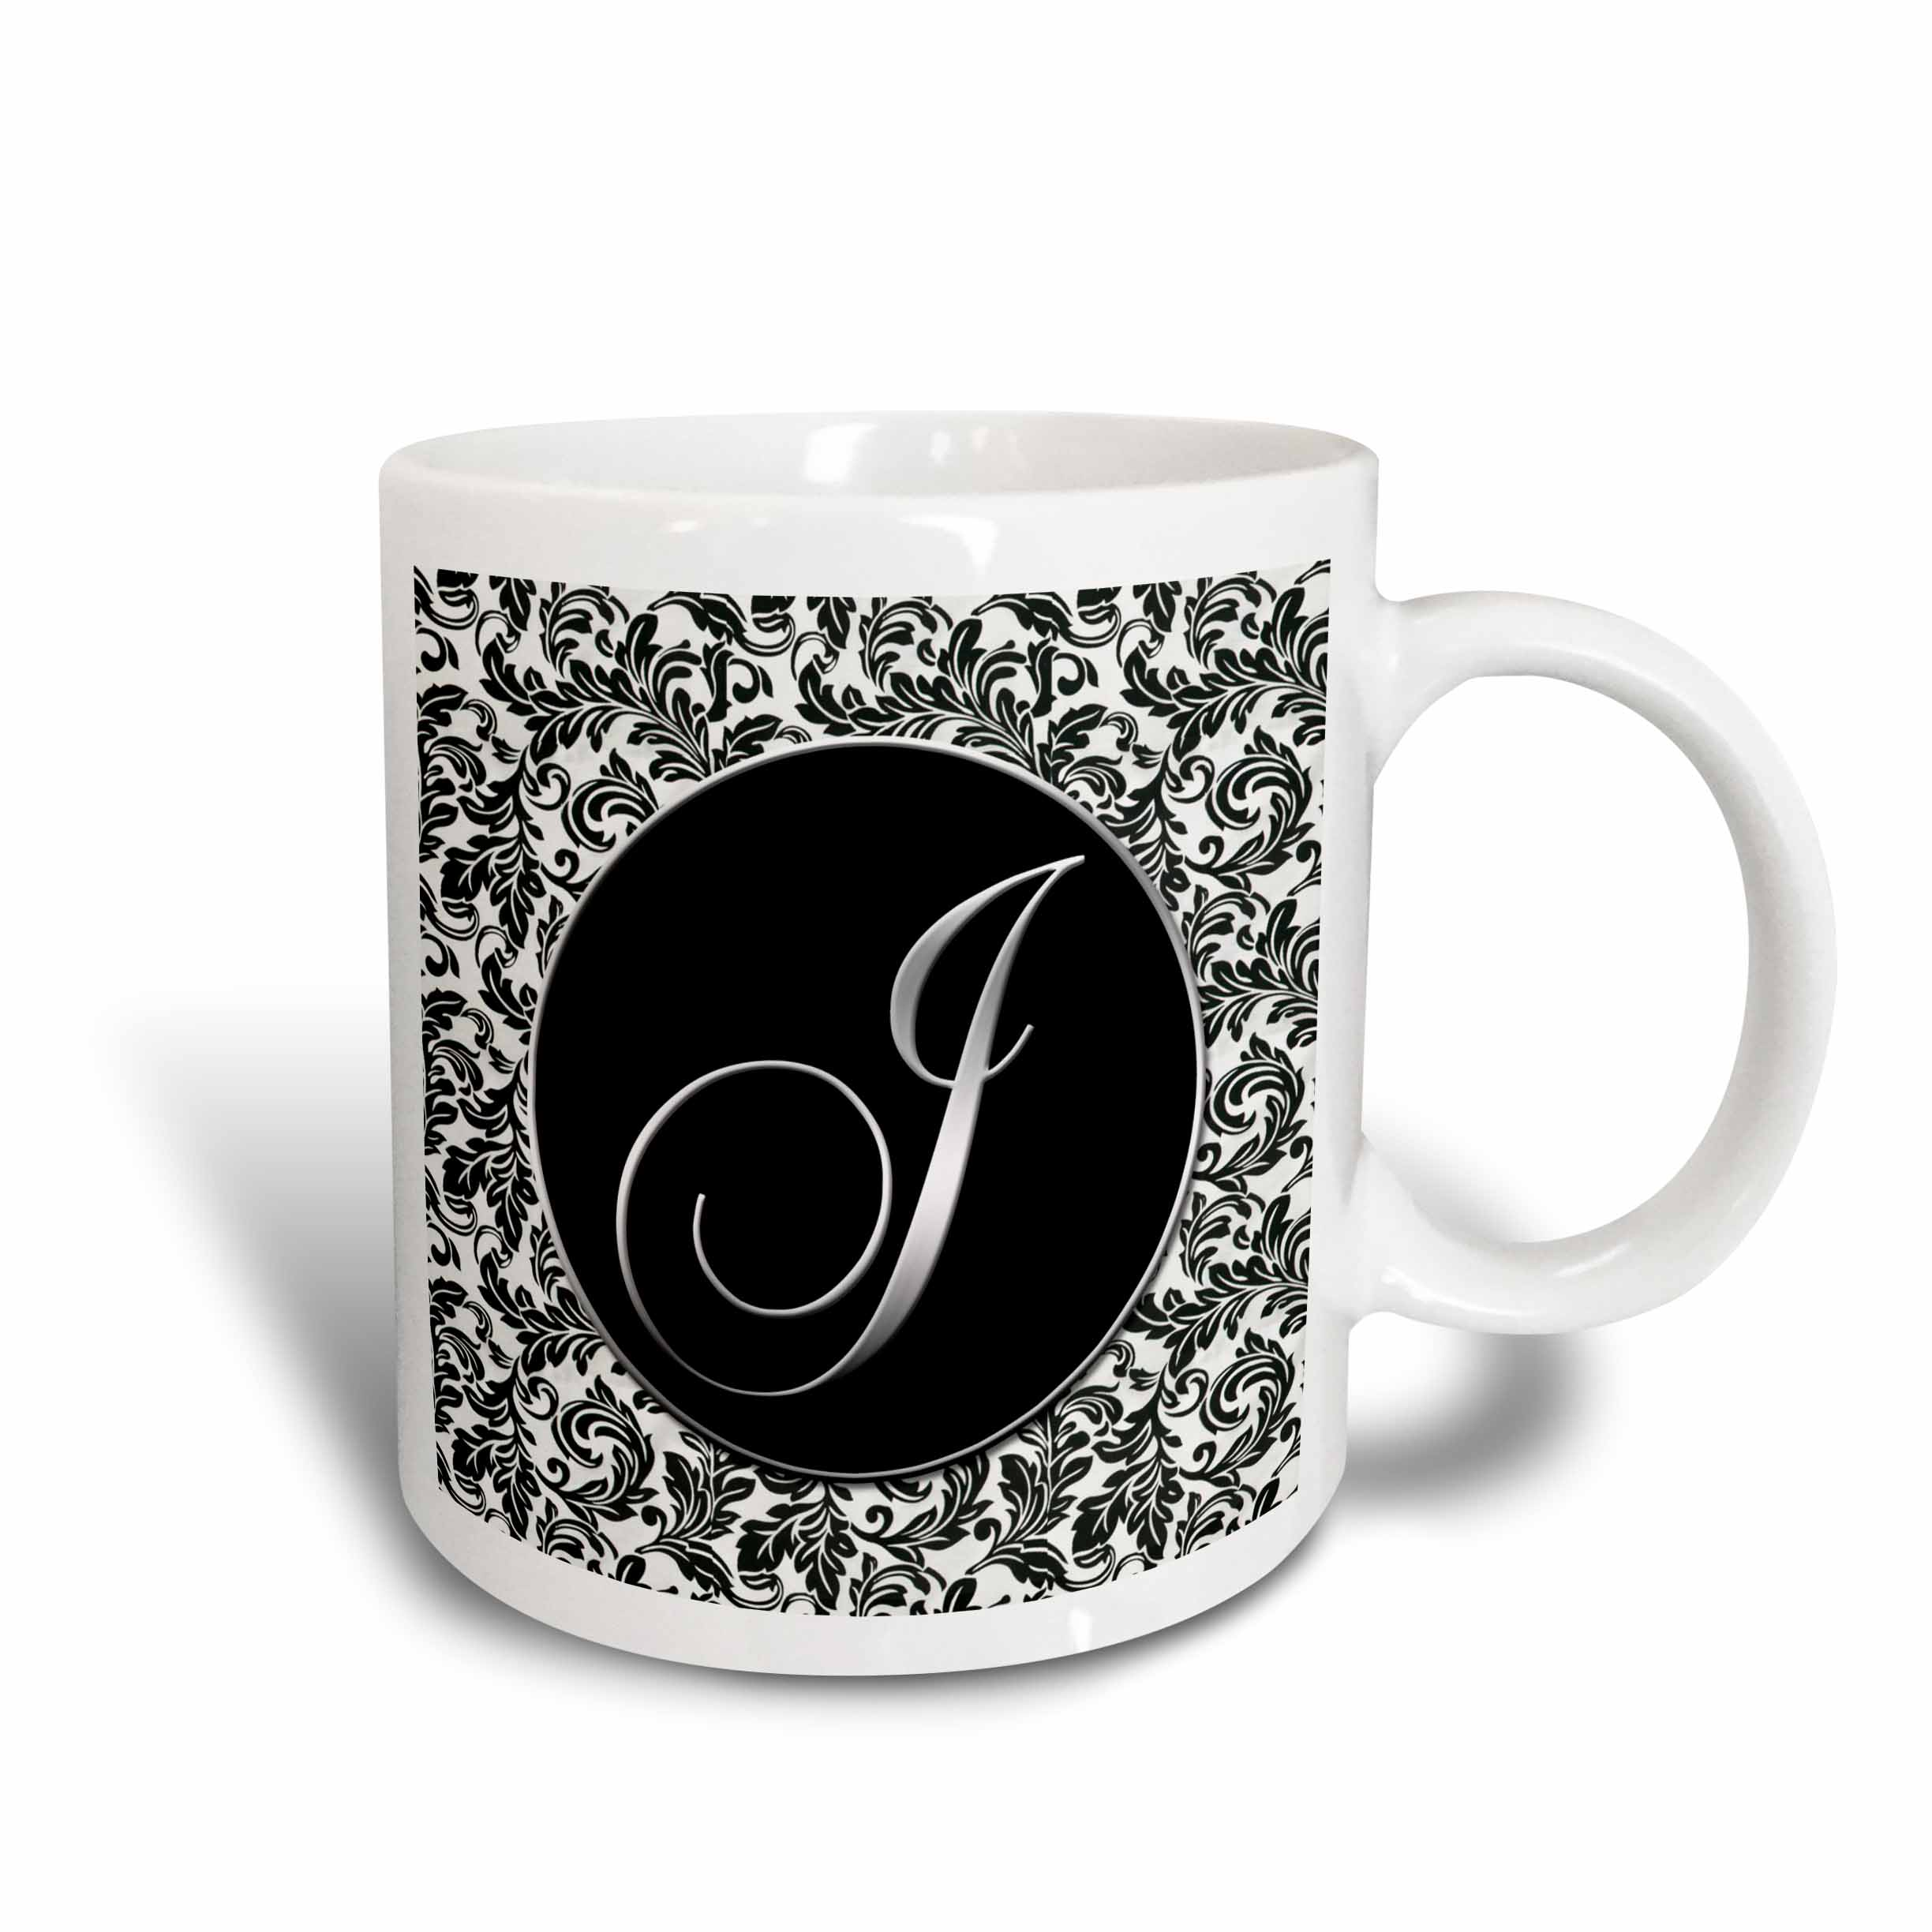 3dRose Letter J - Black and White Damask, Ceramic Mug, 15-ounce